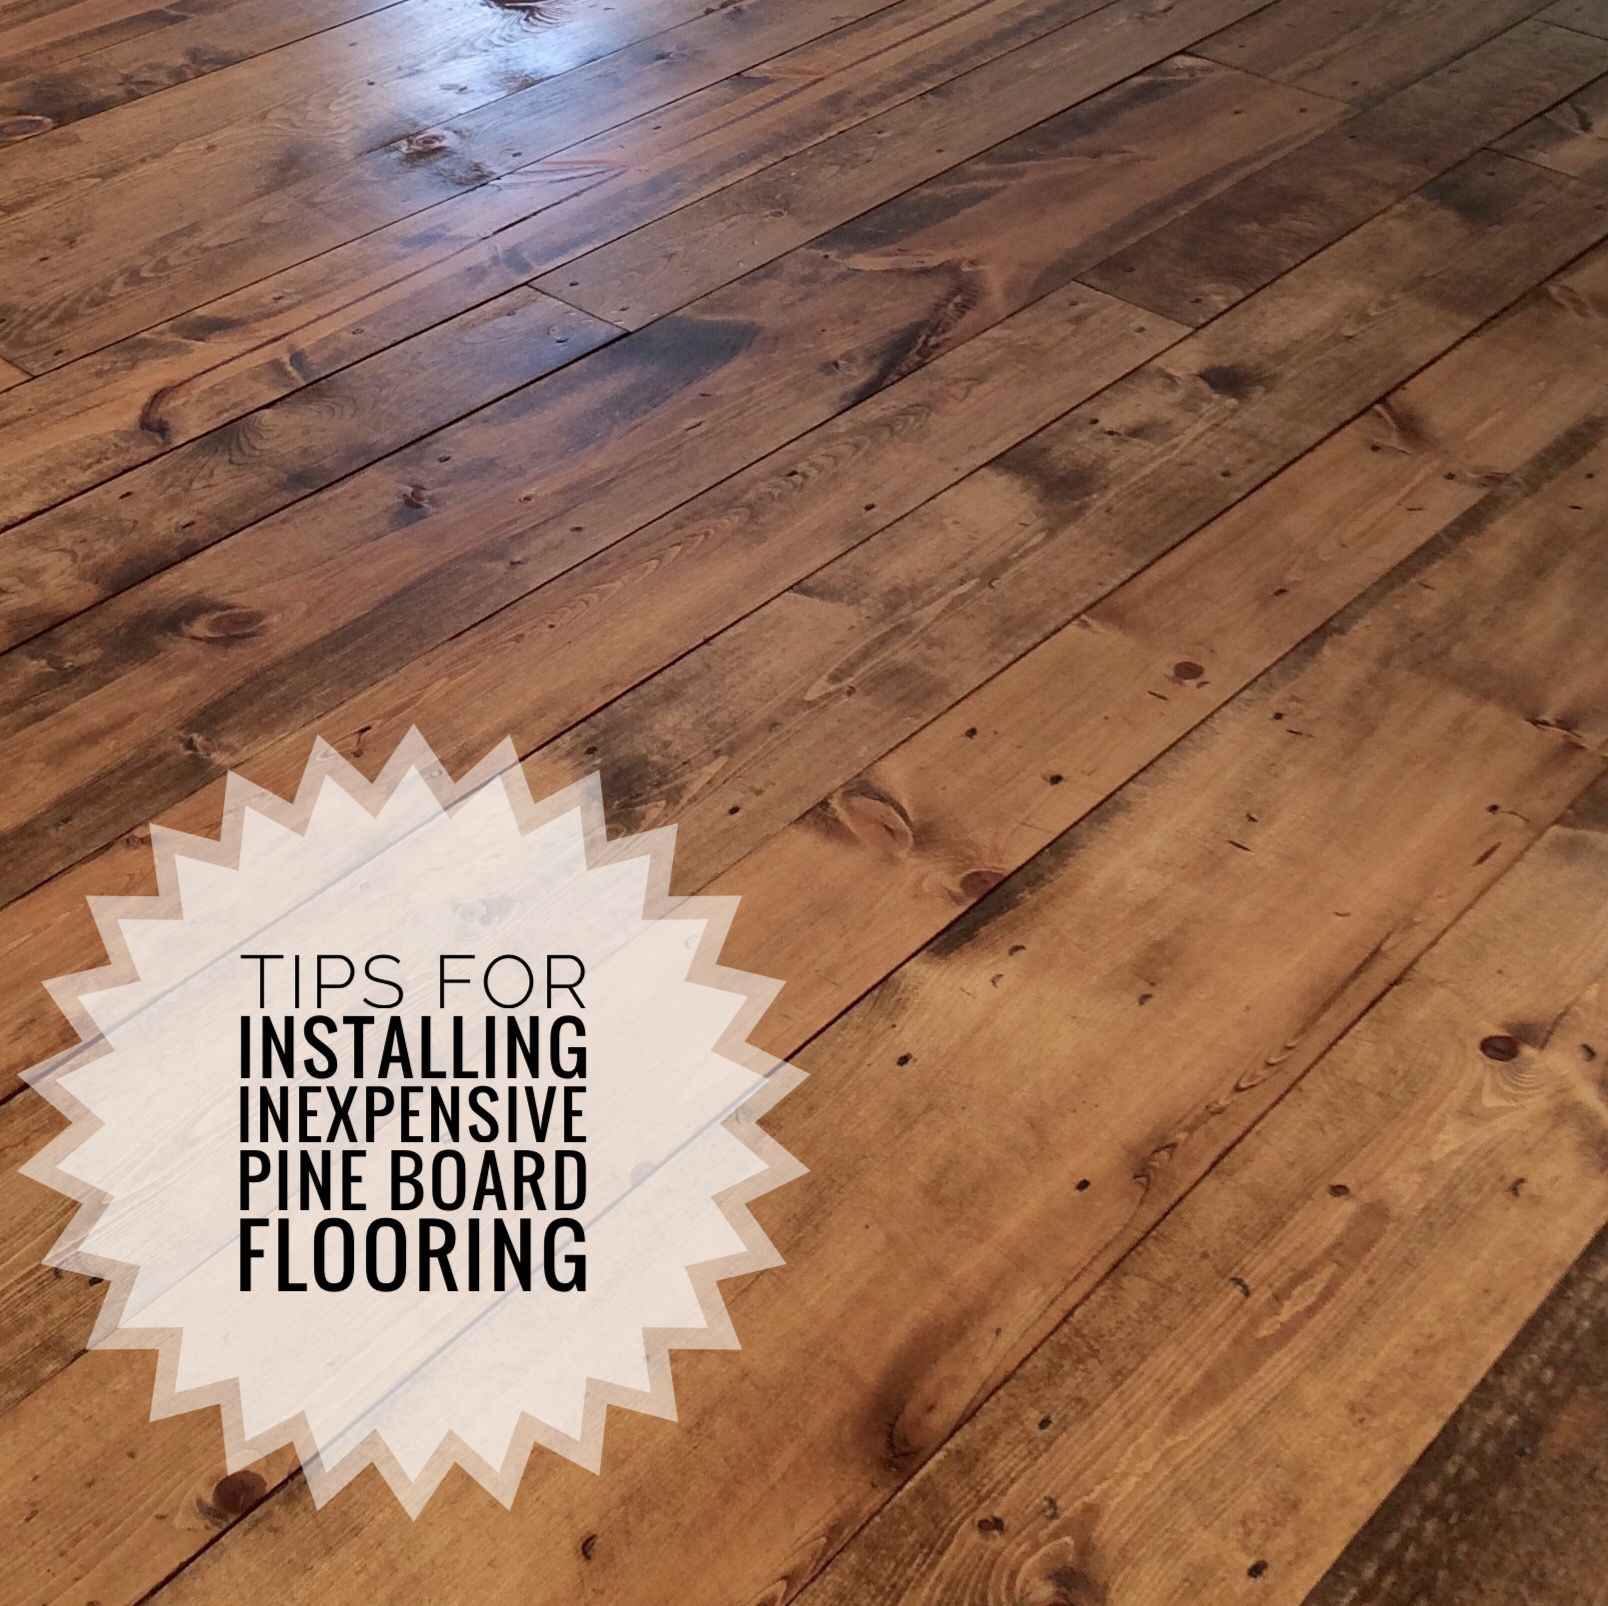 Inexpensive Wood Flooring Using Pine Boards All You Need To Know